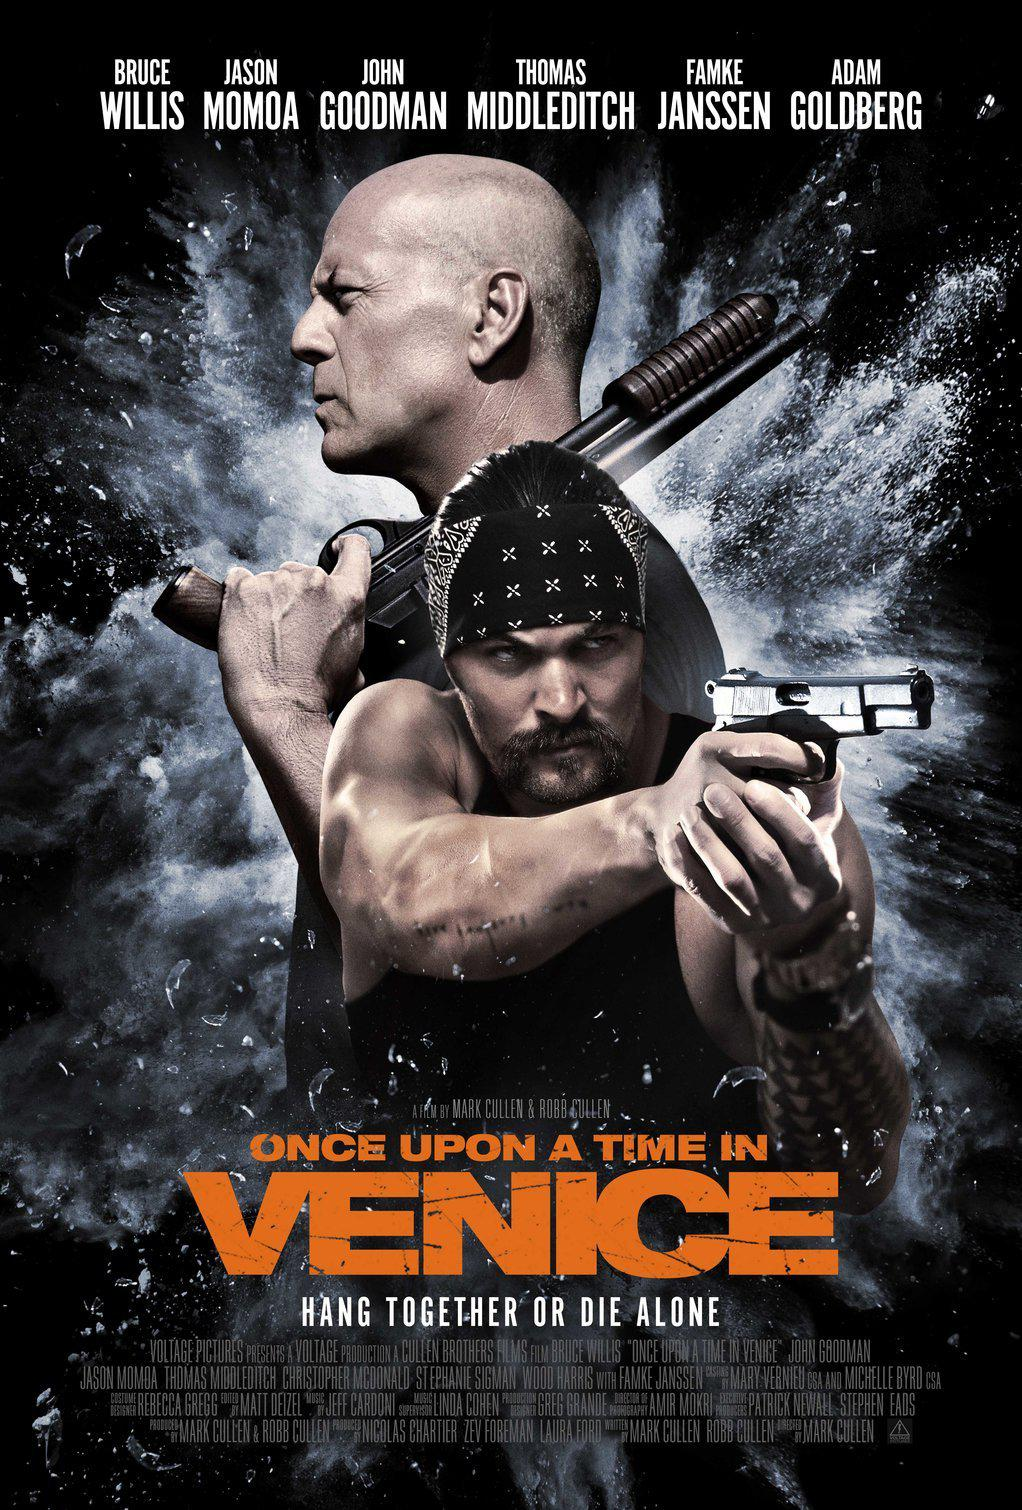 Once Upon a Time in Venice - Bruce Willis - Jason Momoa - John Goodman - Thomas Middleditch - Famke Janssen - Adam Goldberg